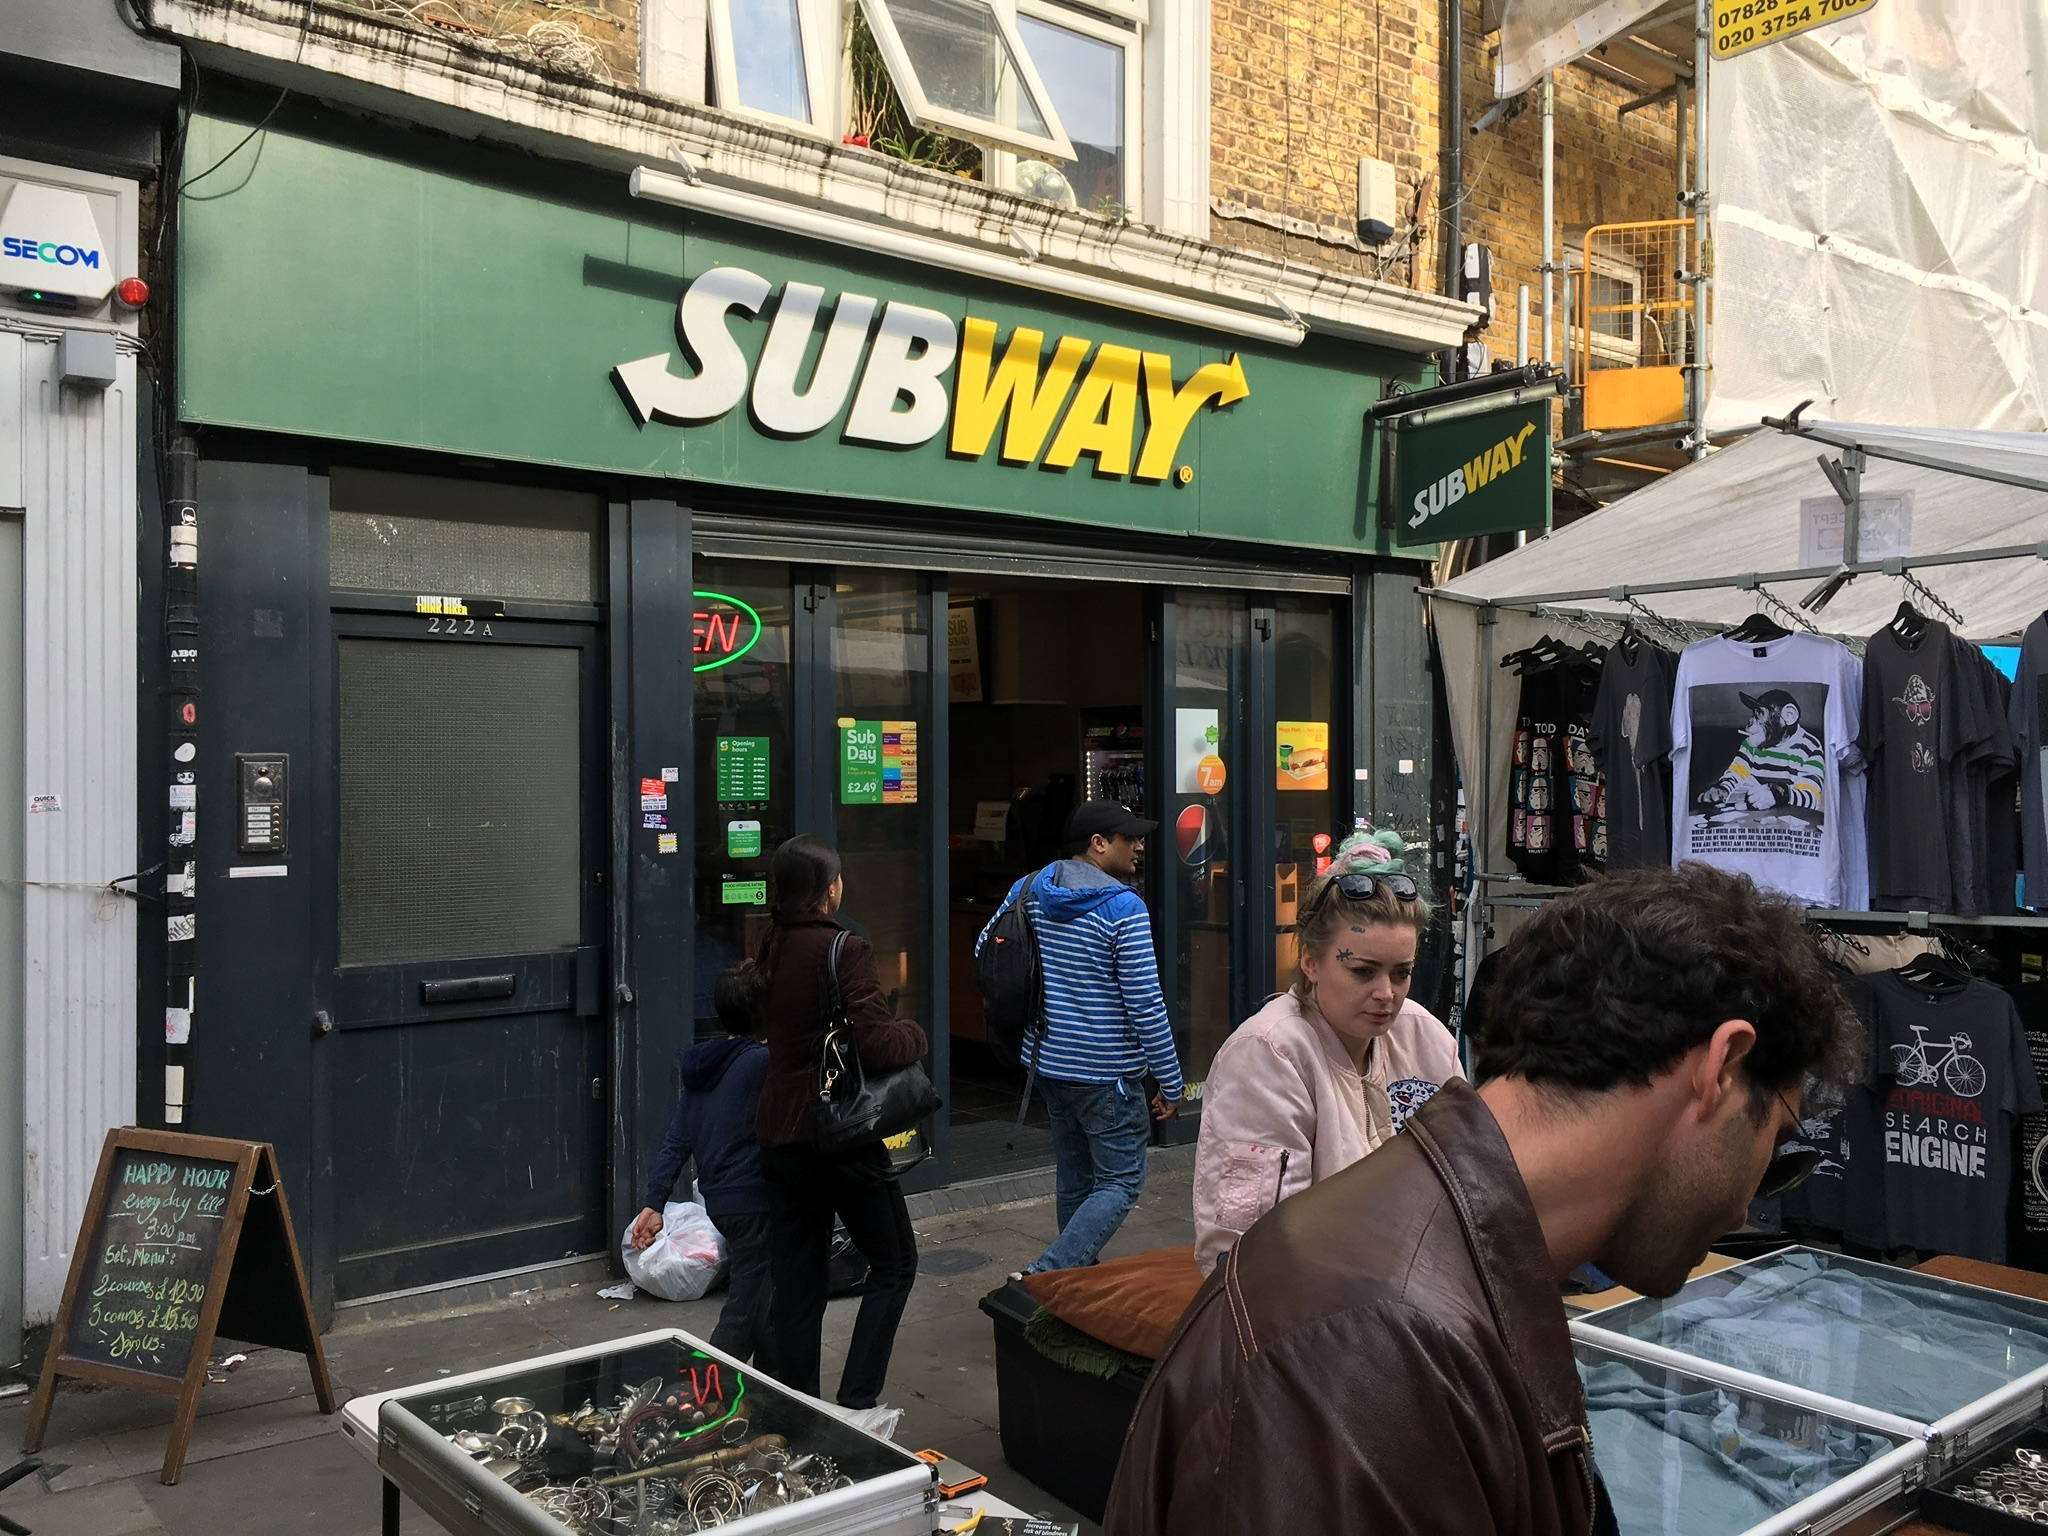 Subway in Prime Commercial and Residential area with extended hours and one of the most famous London Markets